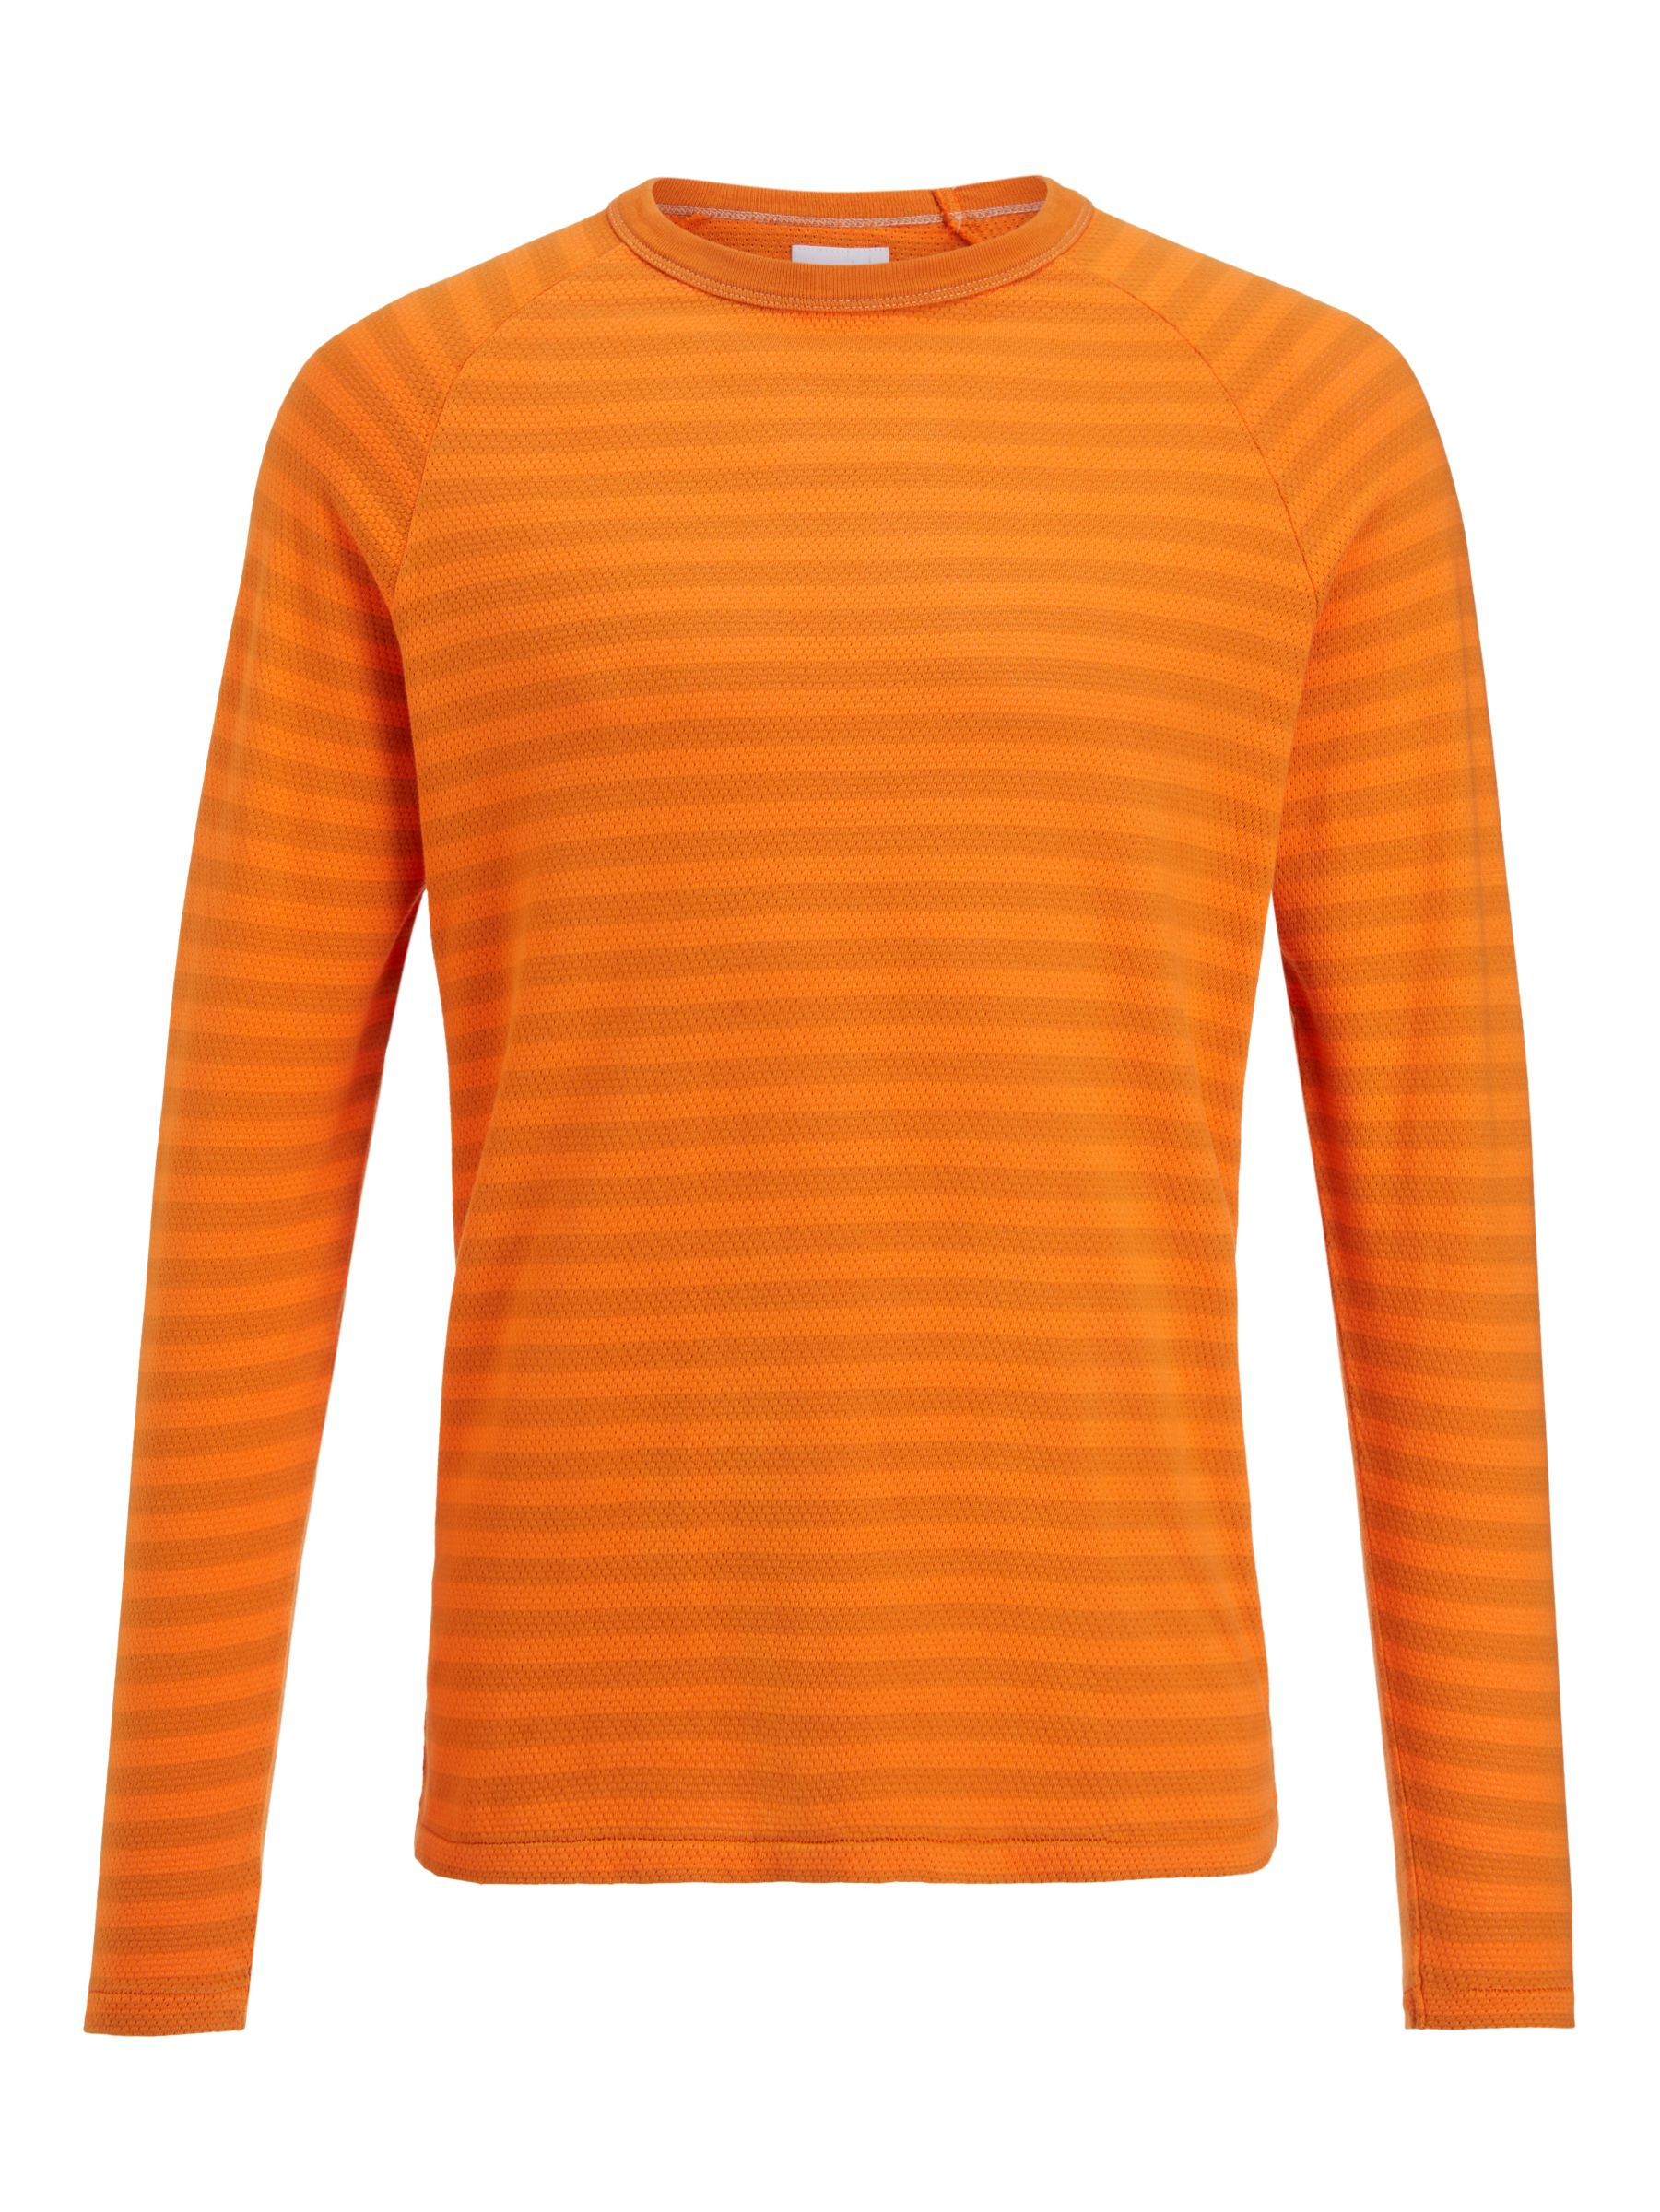 Buy Les Basics Le Crew Tee Long Sleeve Striped T-Shirt, Orange, S Online at johnlewis.com